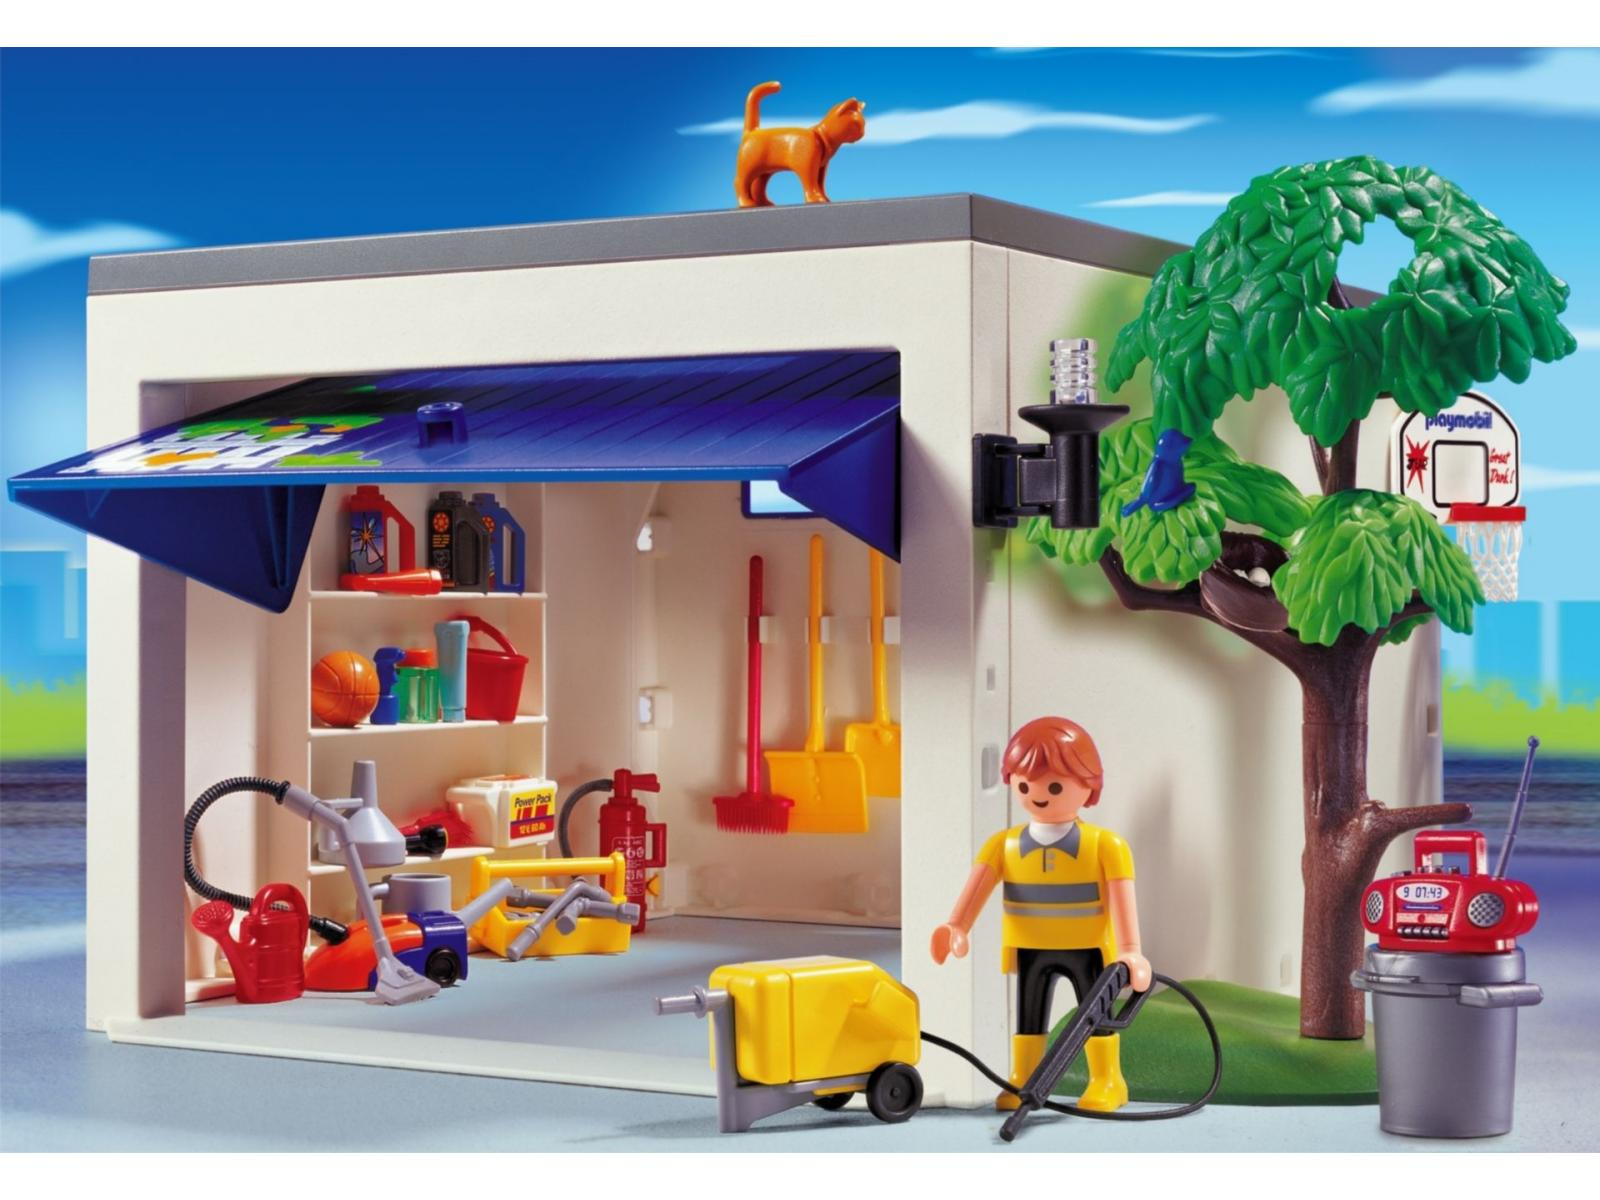 interieur de la maison de ville playmobil. Black Bedroom Furniture Sets. Home Design Ideas